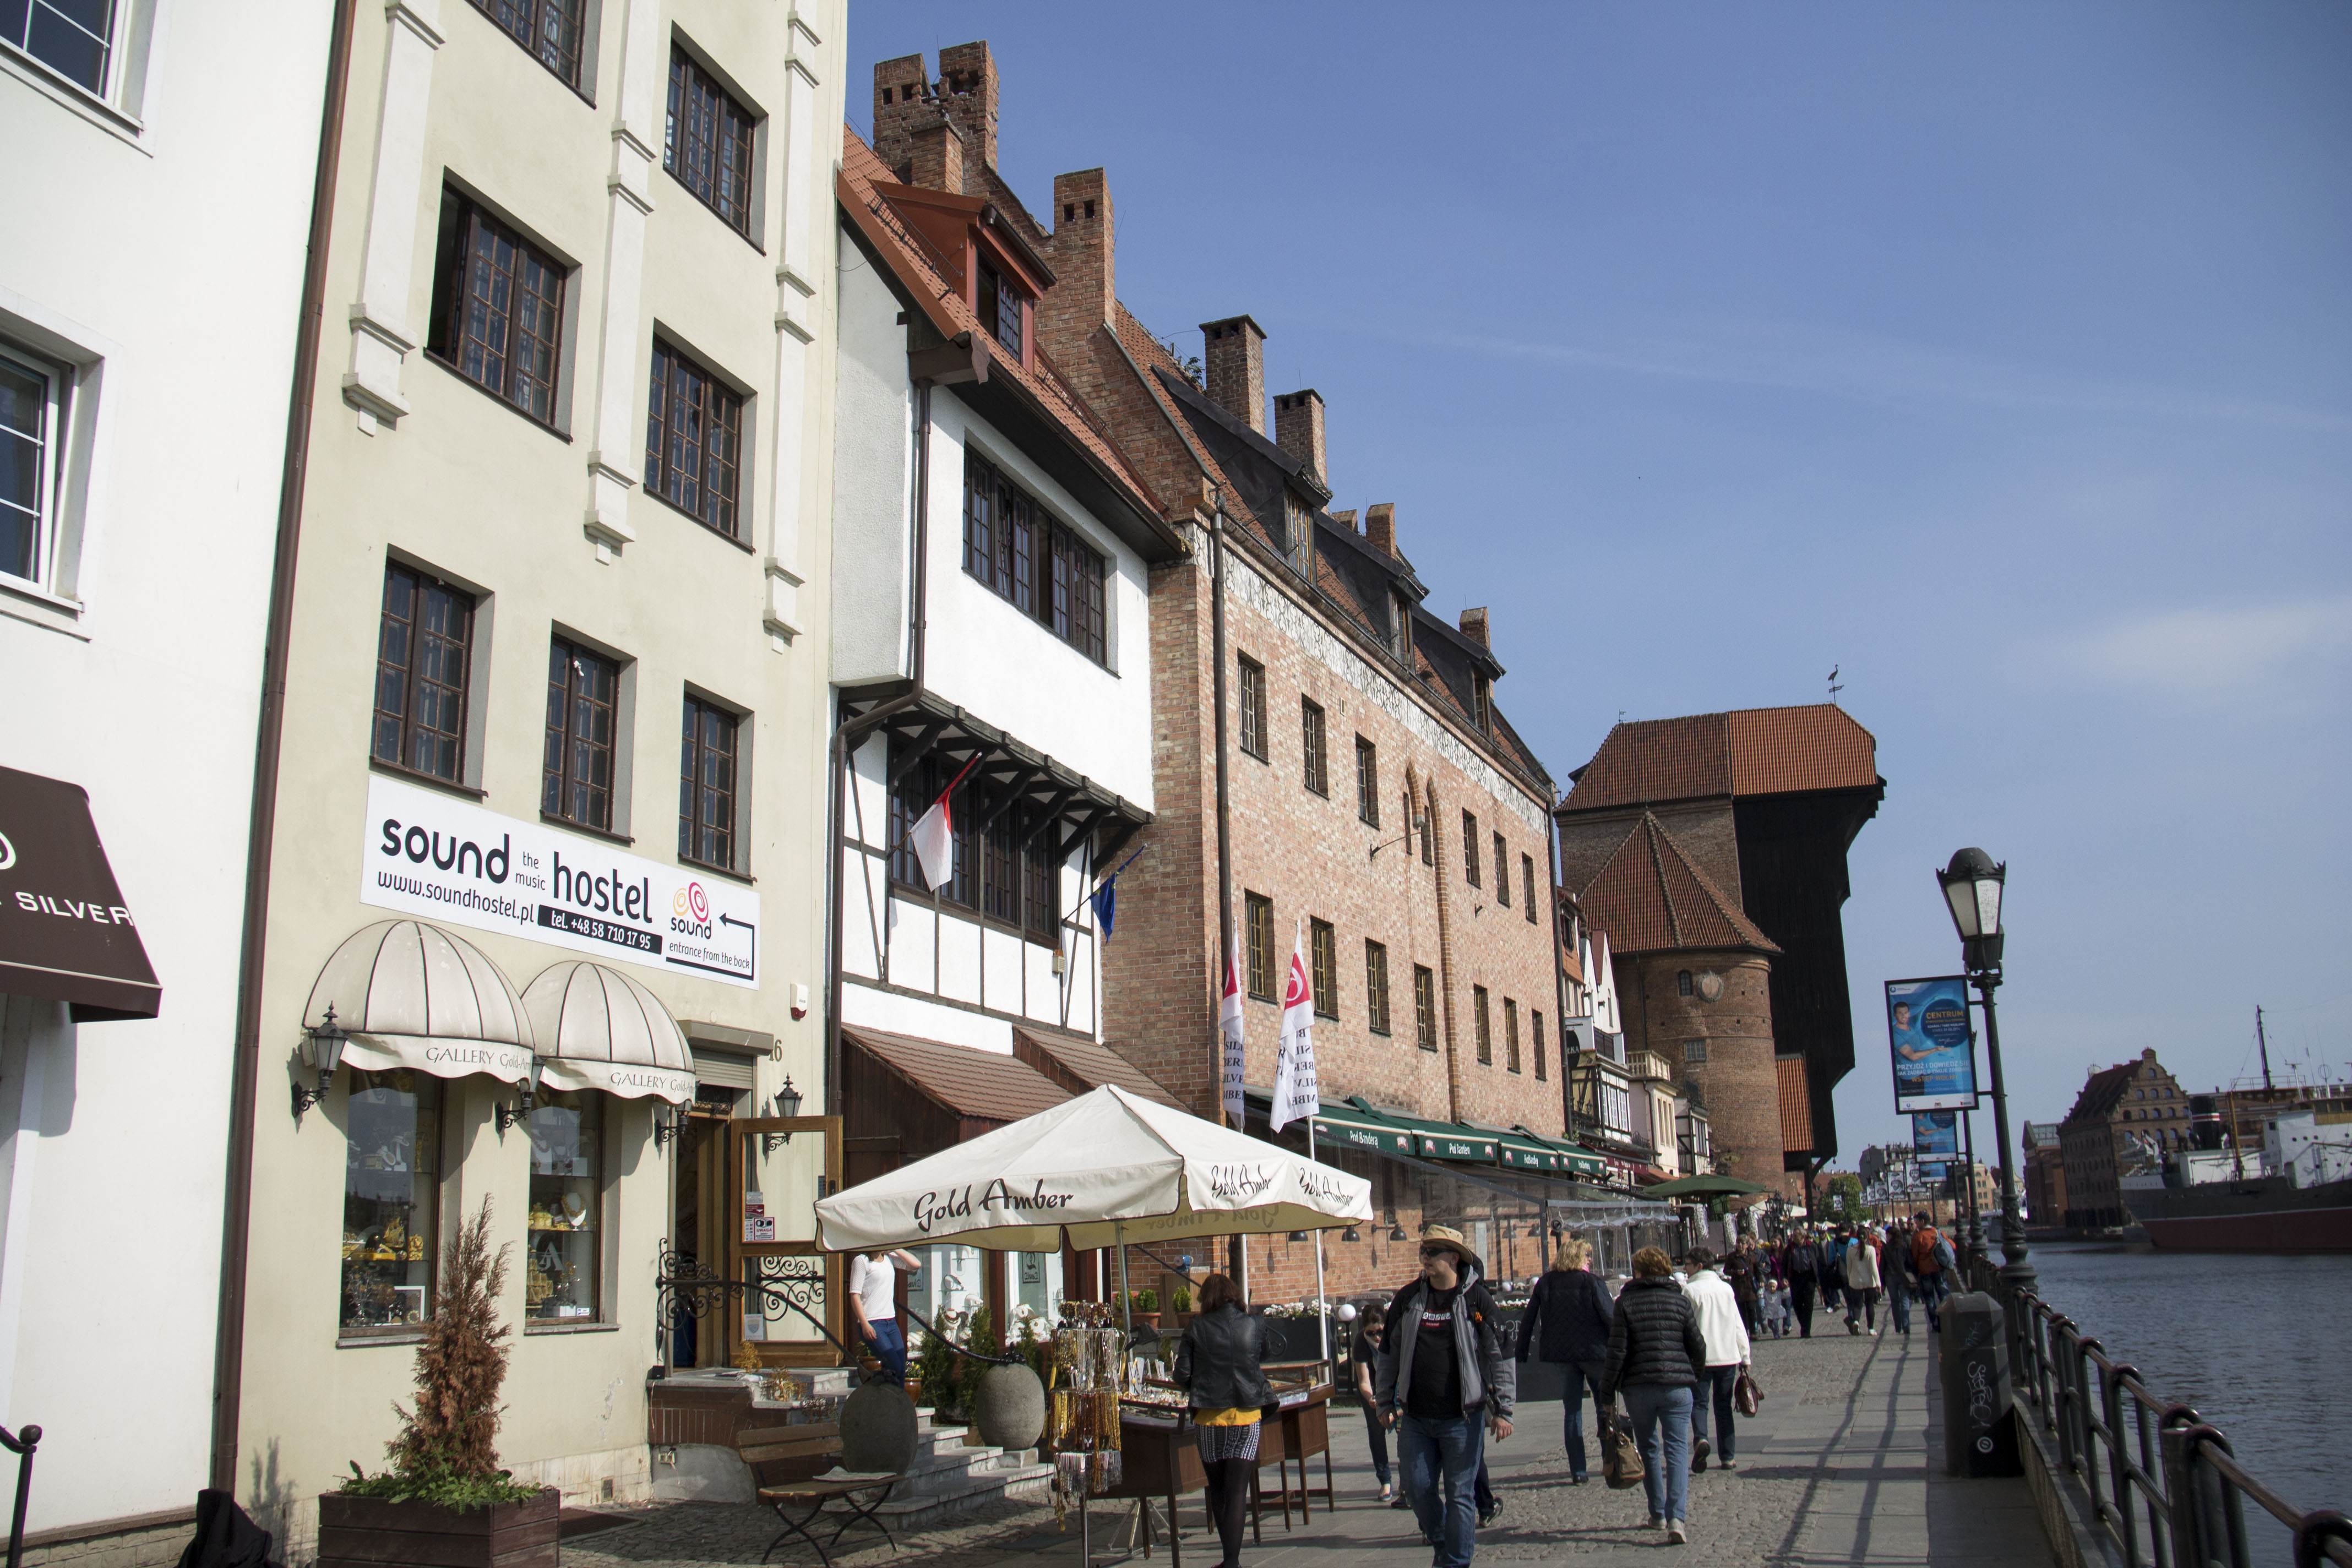 gdansk guys Search the world's information, including webpages, images, videos and more google has many special features to help you find exactly what you're looking for.